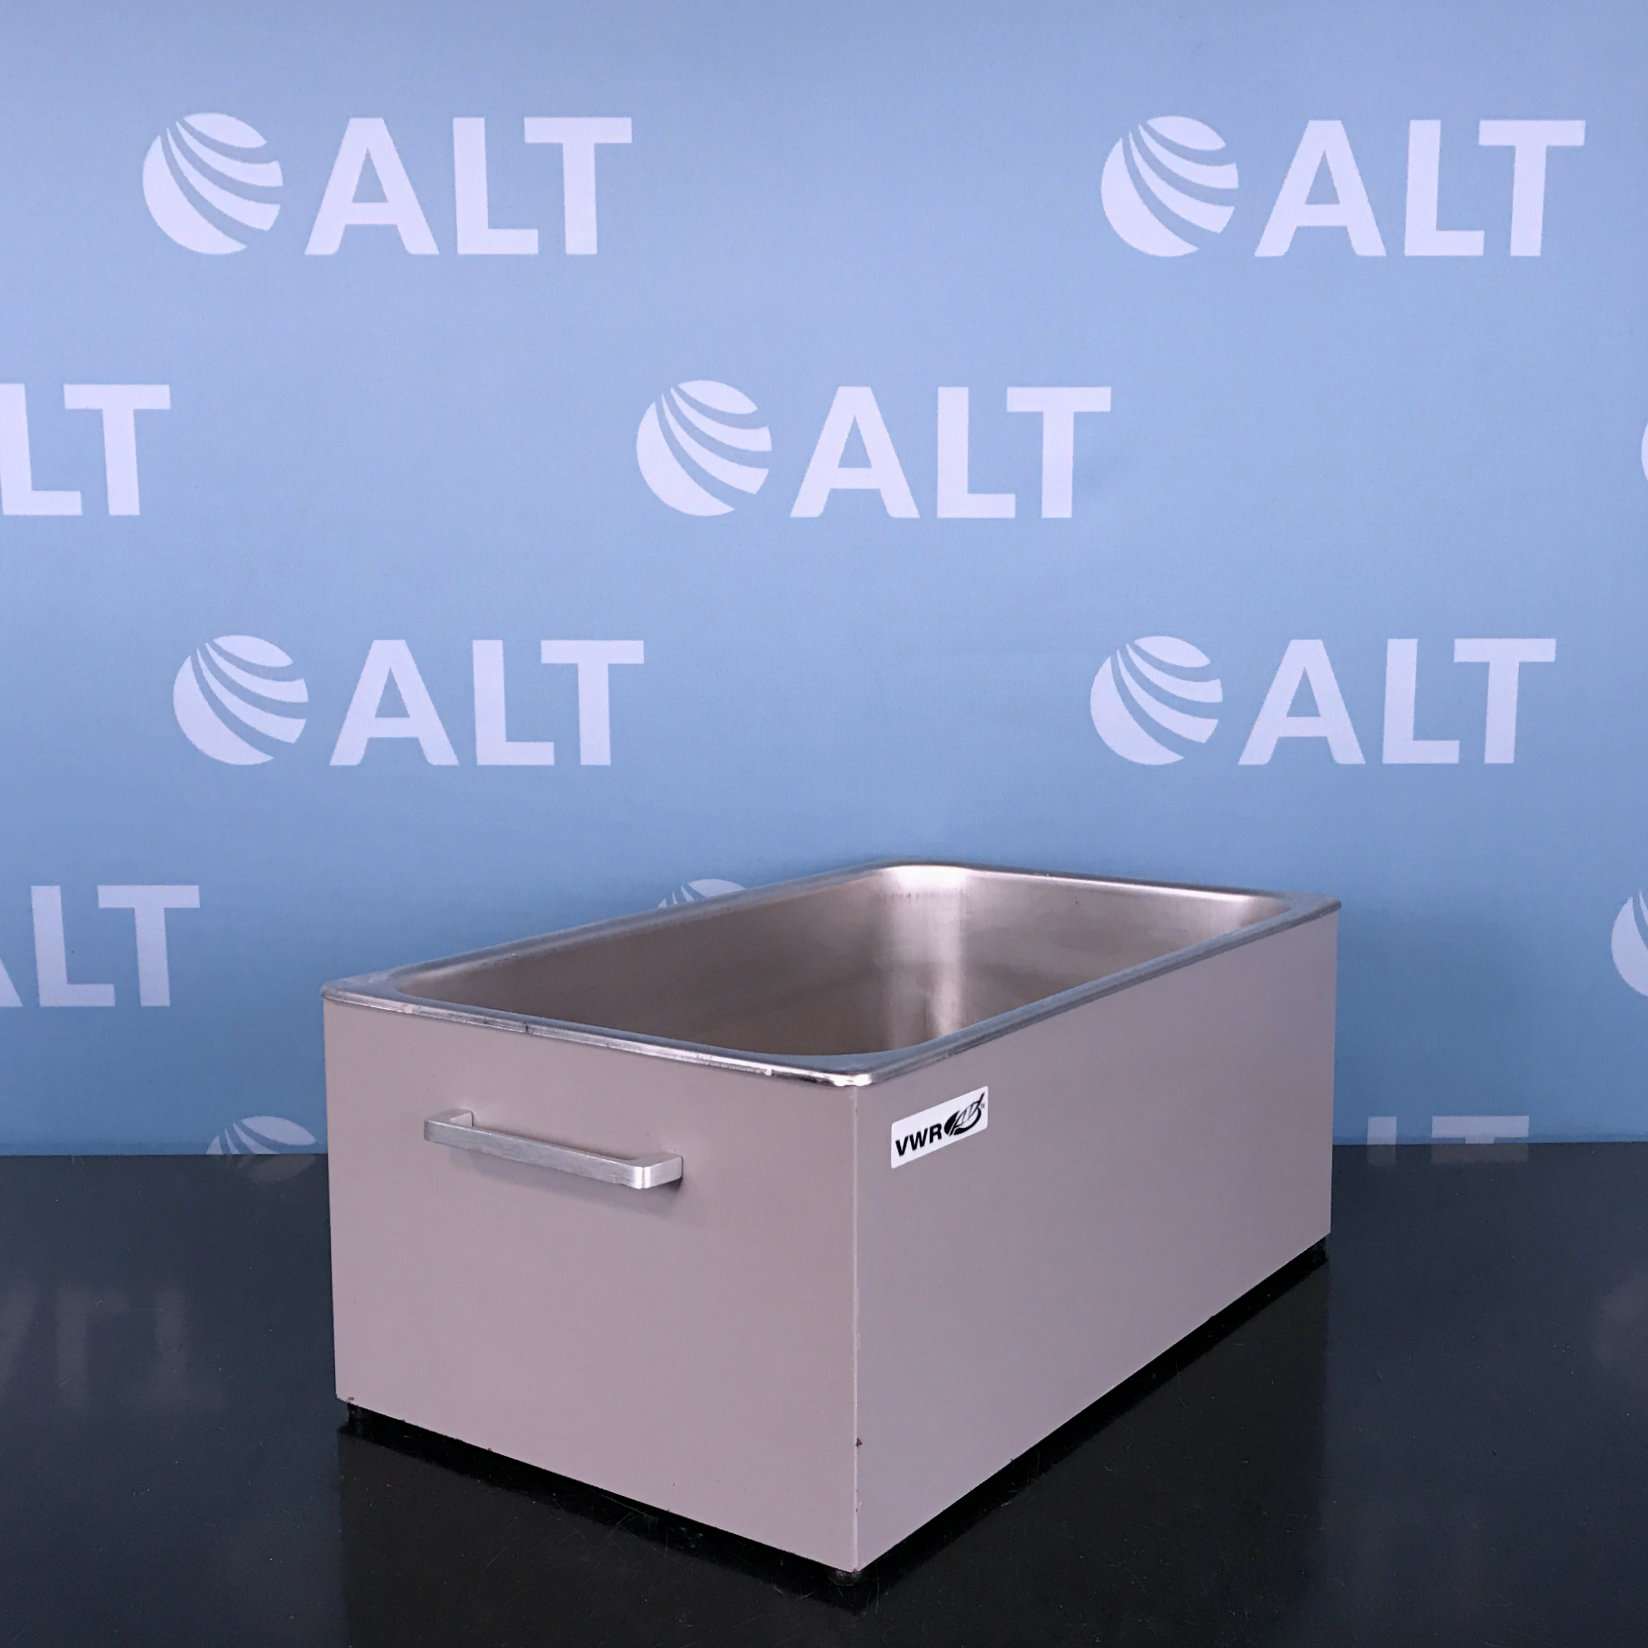 VWR Stainless Steel Open Bath CAT No. 13270-877 Image